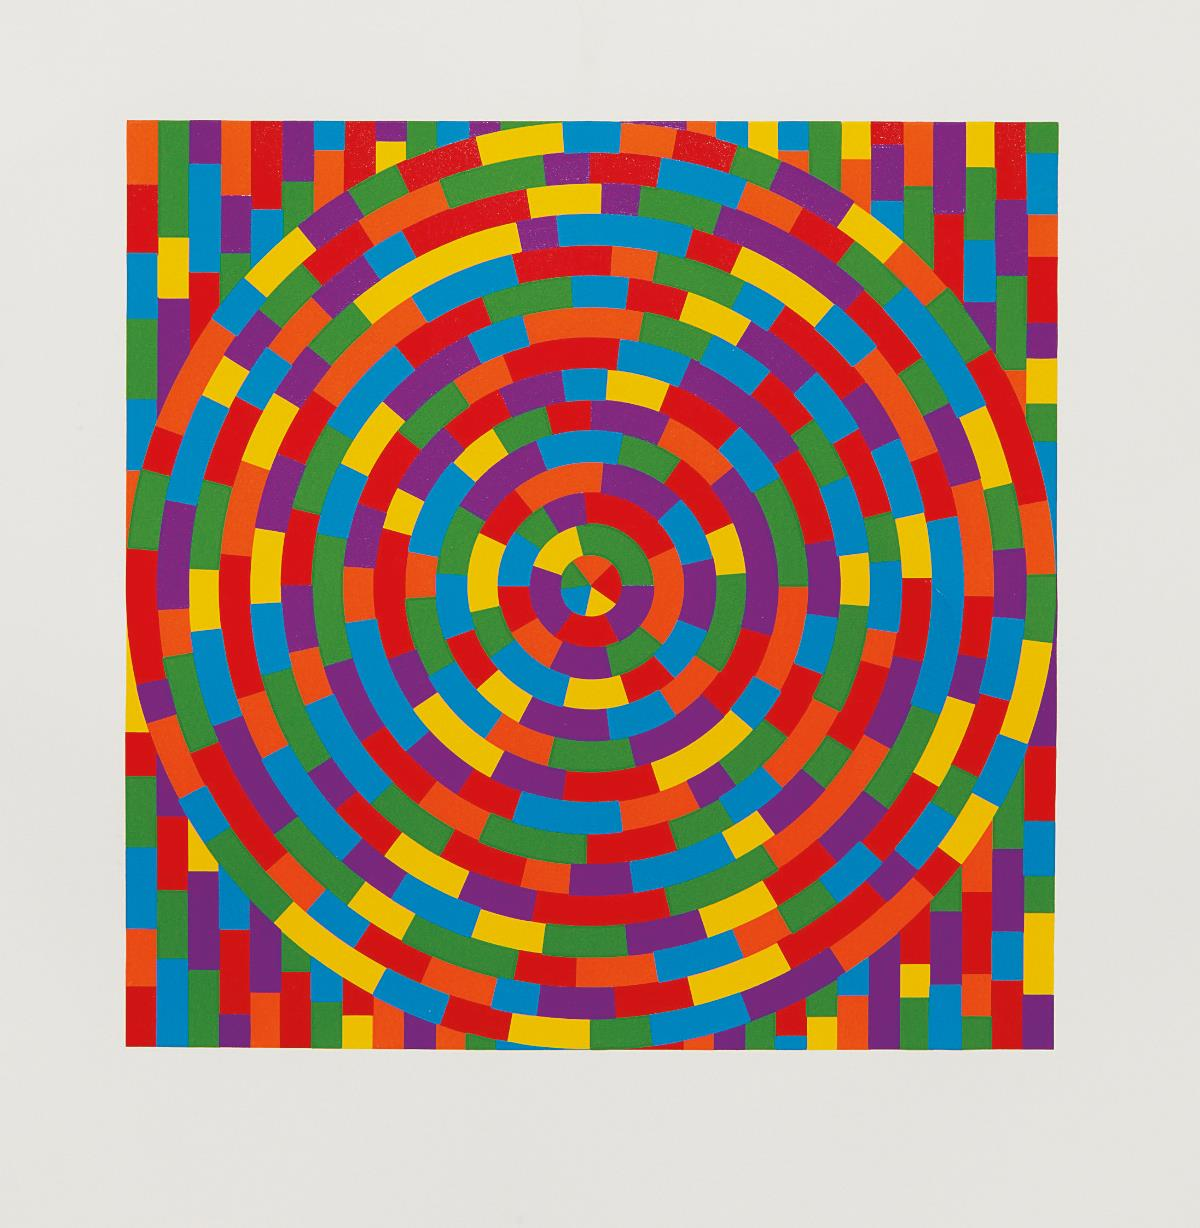 Sol LeWitt-Circle with Broken Bands Within a Square-2003